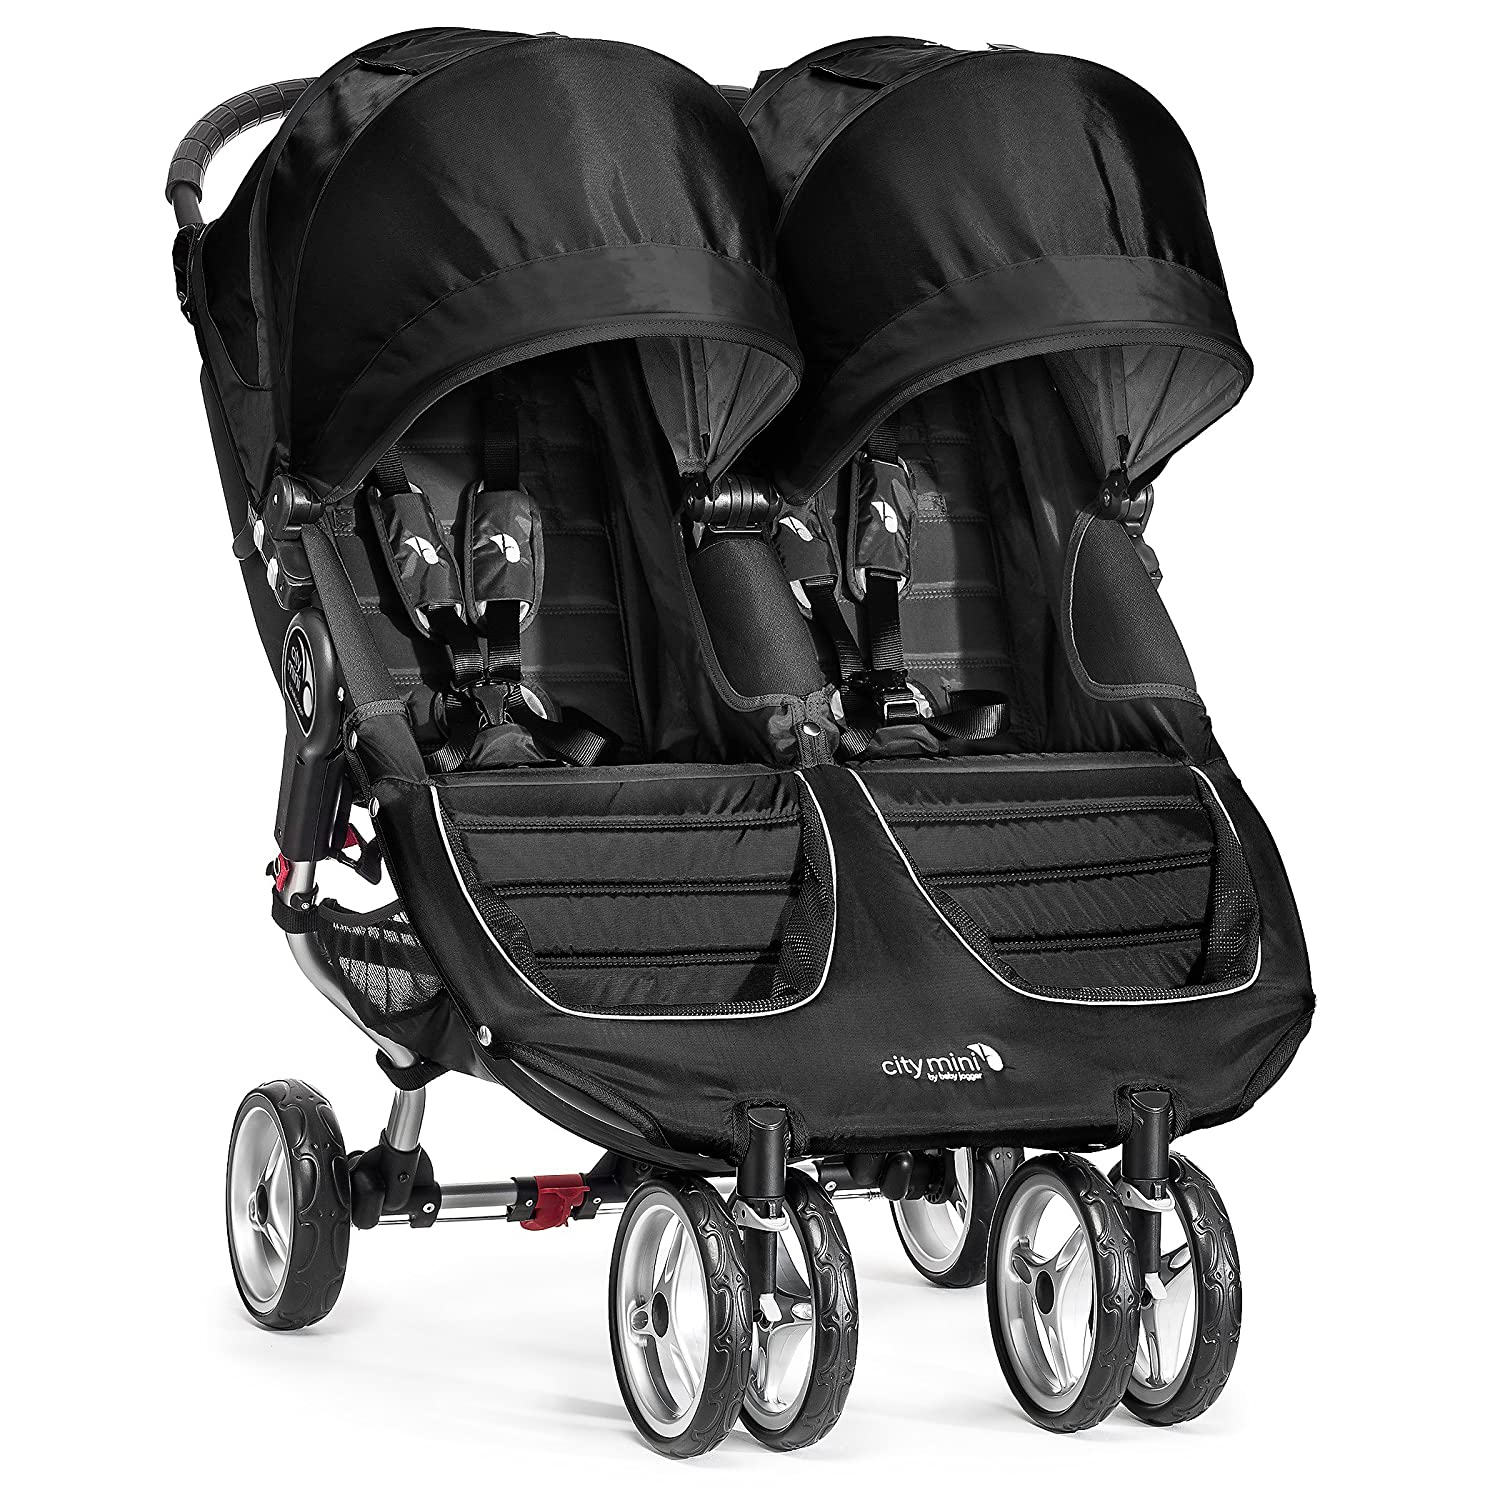 Disney Packing List item, Double stroller